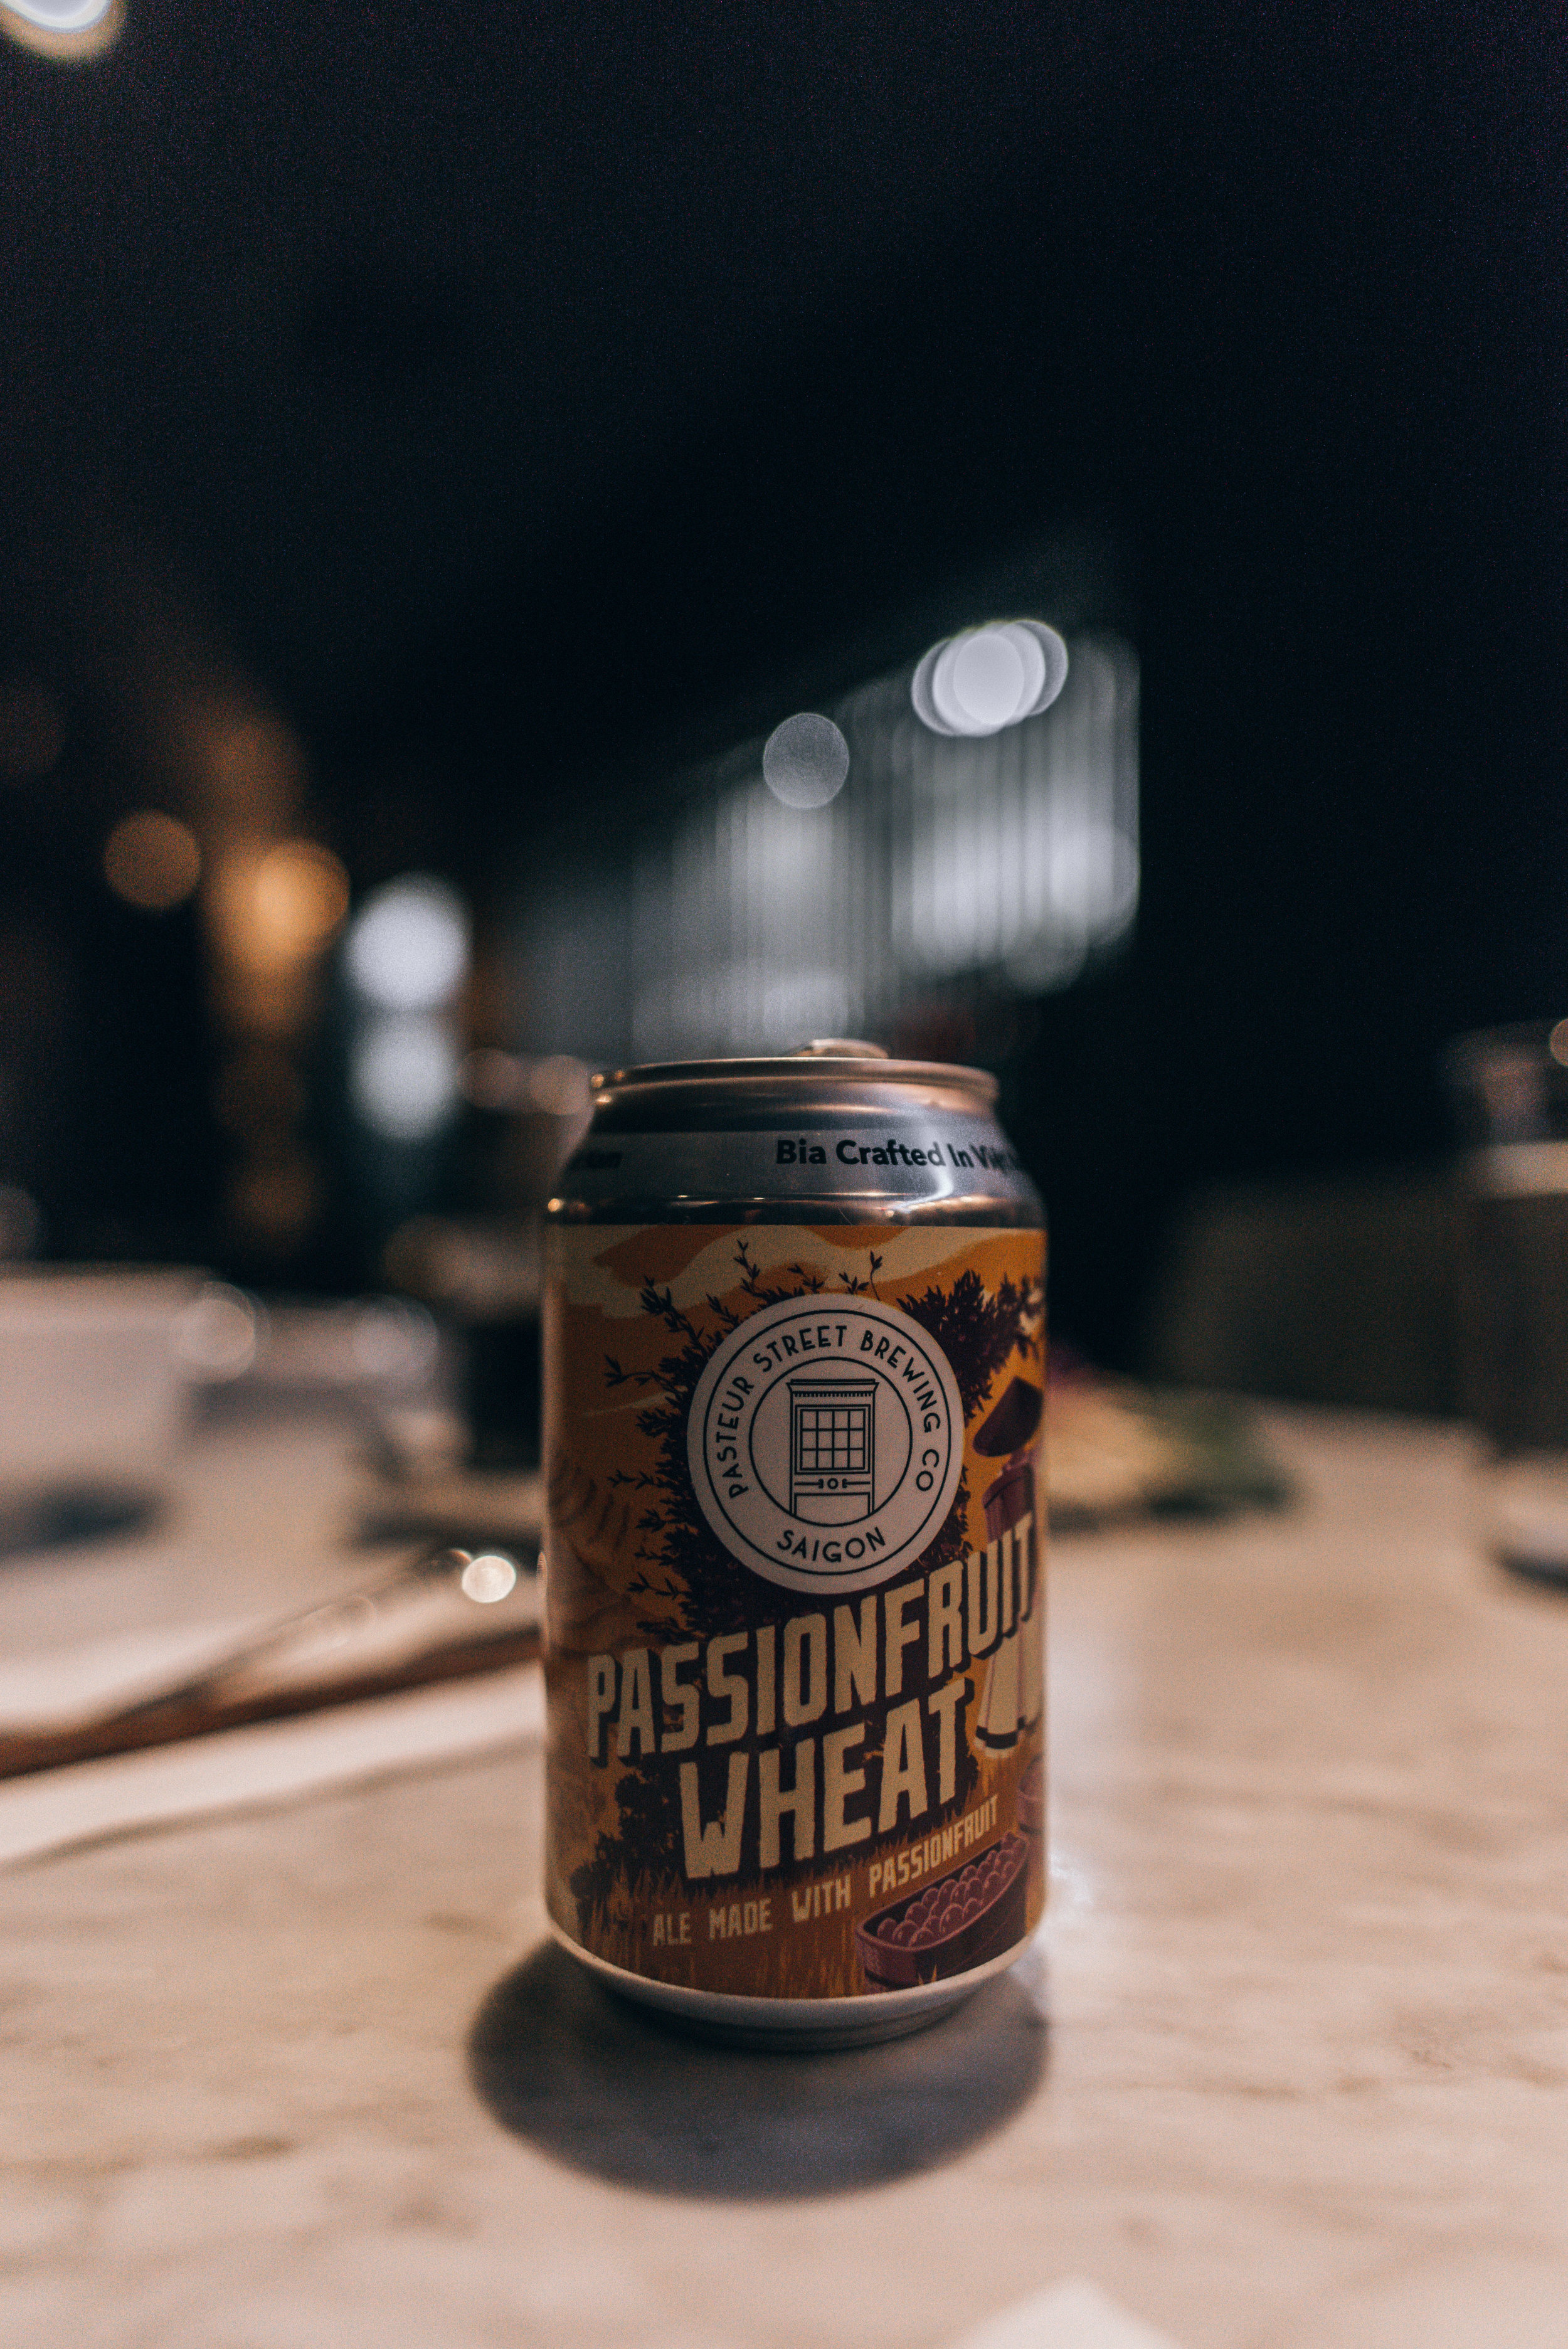 Passionfruit Wheat Beer from Pasteur Street Brewing Co in Saigon - We tried this place while in Vietnam last year!